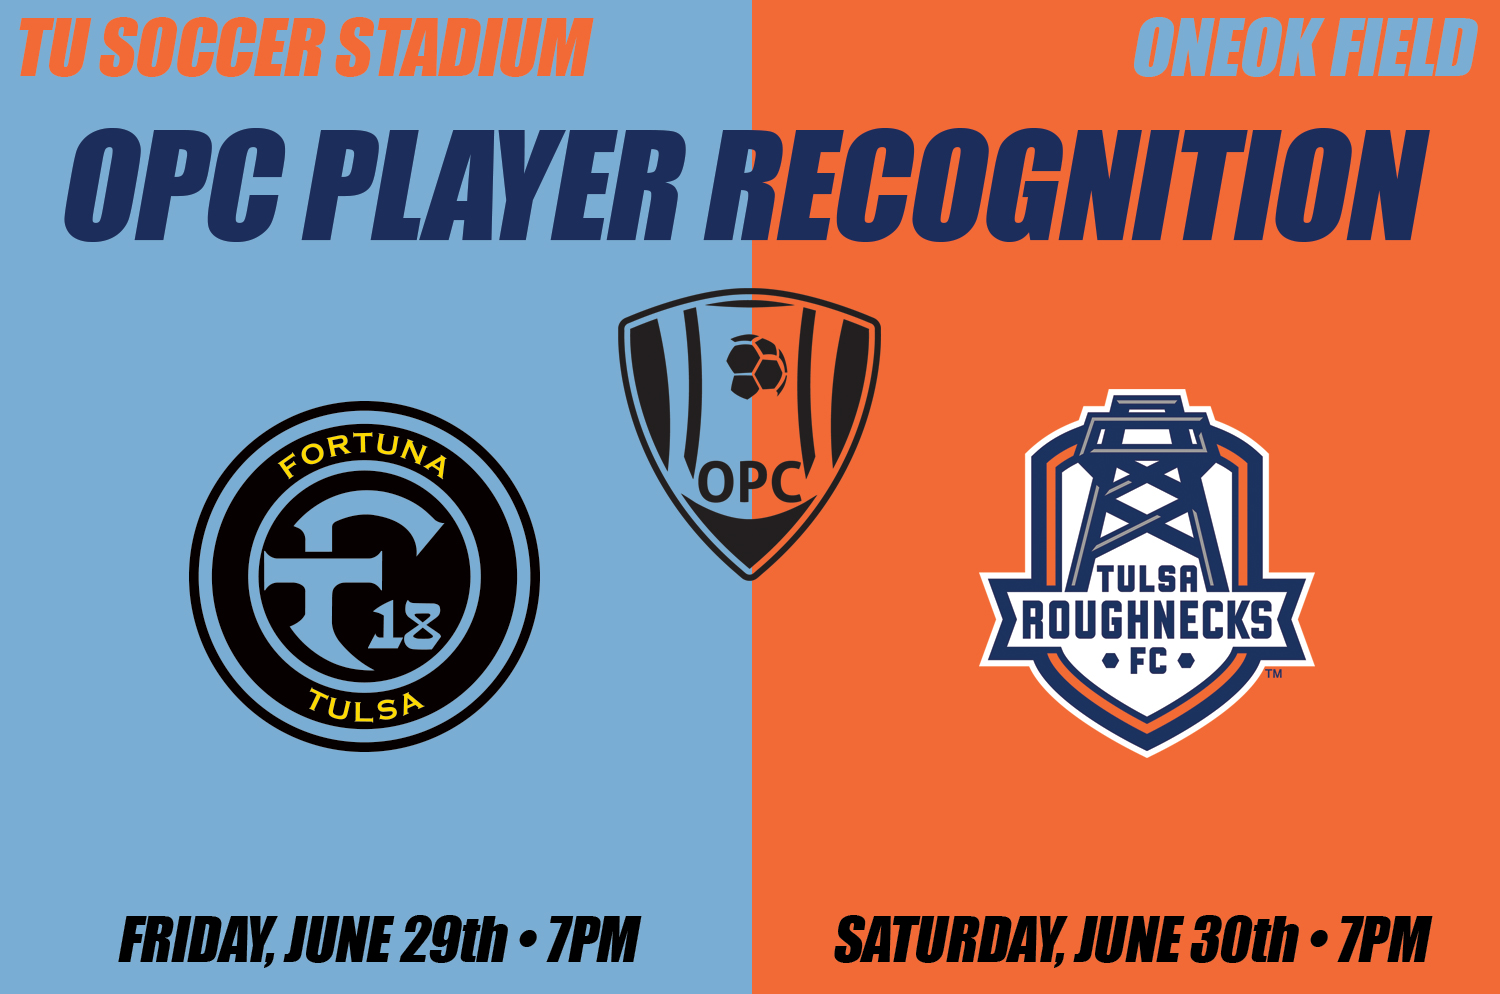 OPC and Regional Champions to be Recognized at Fortuna and Roughnecks Matches